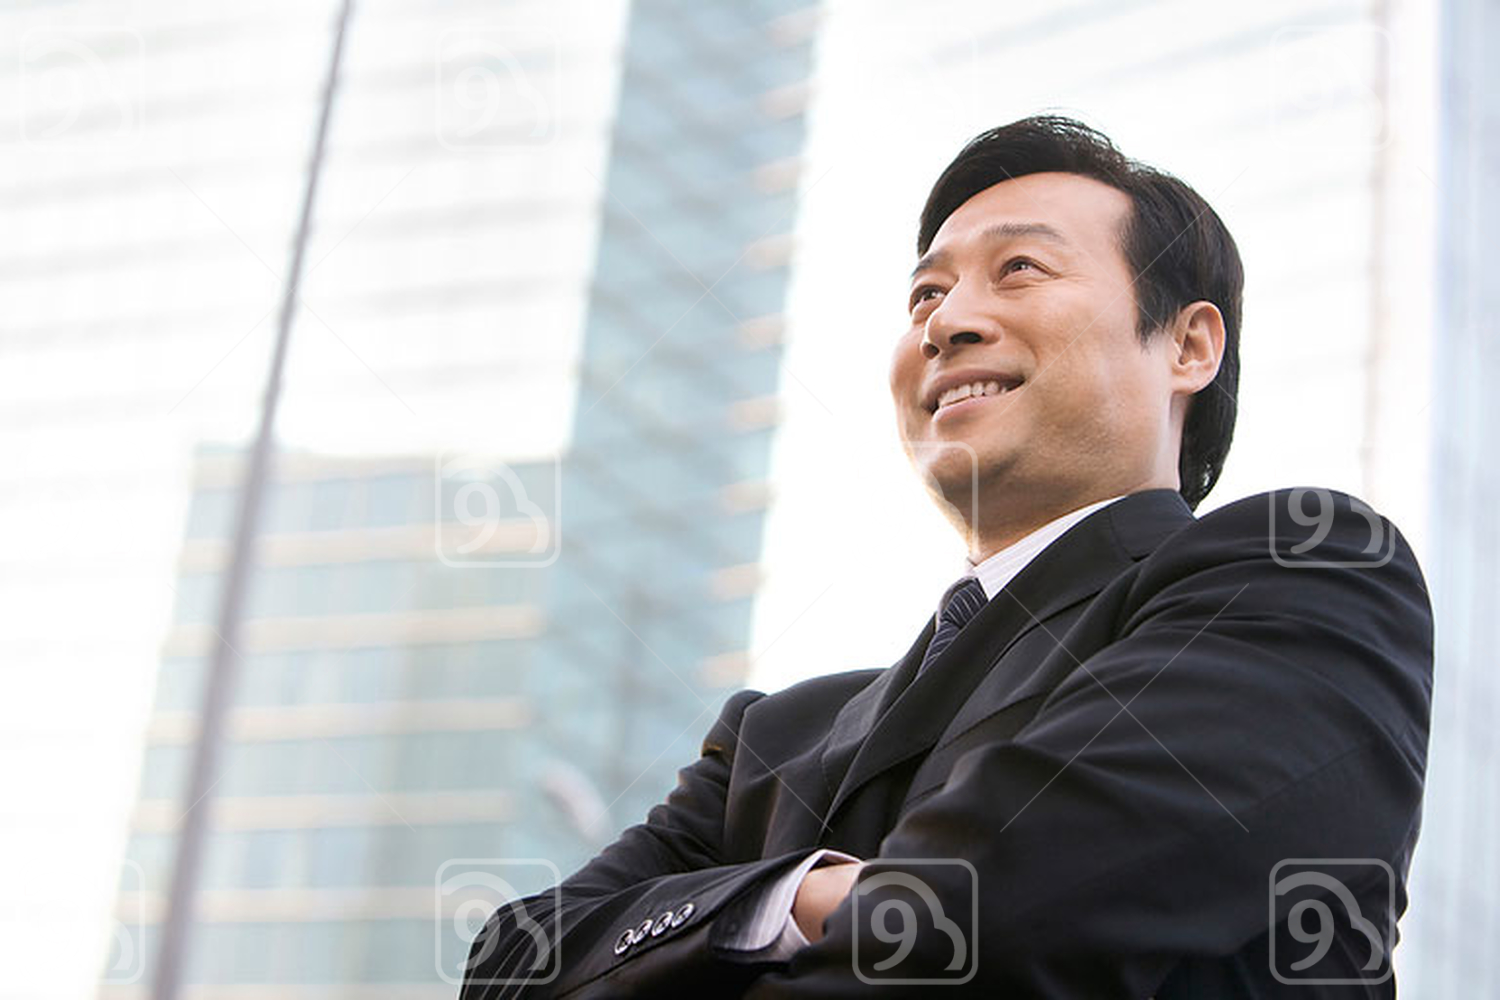 Chinese business Leader Looking into the Future